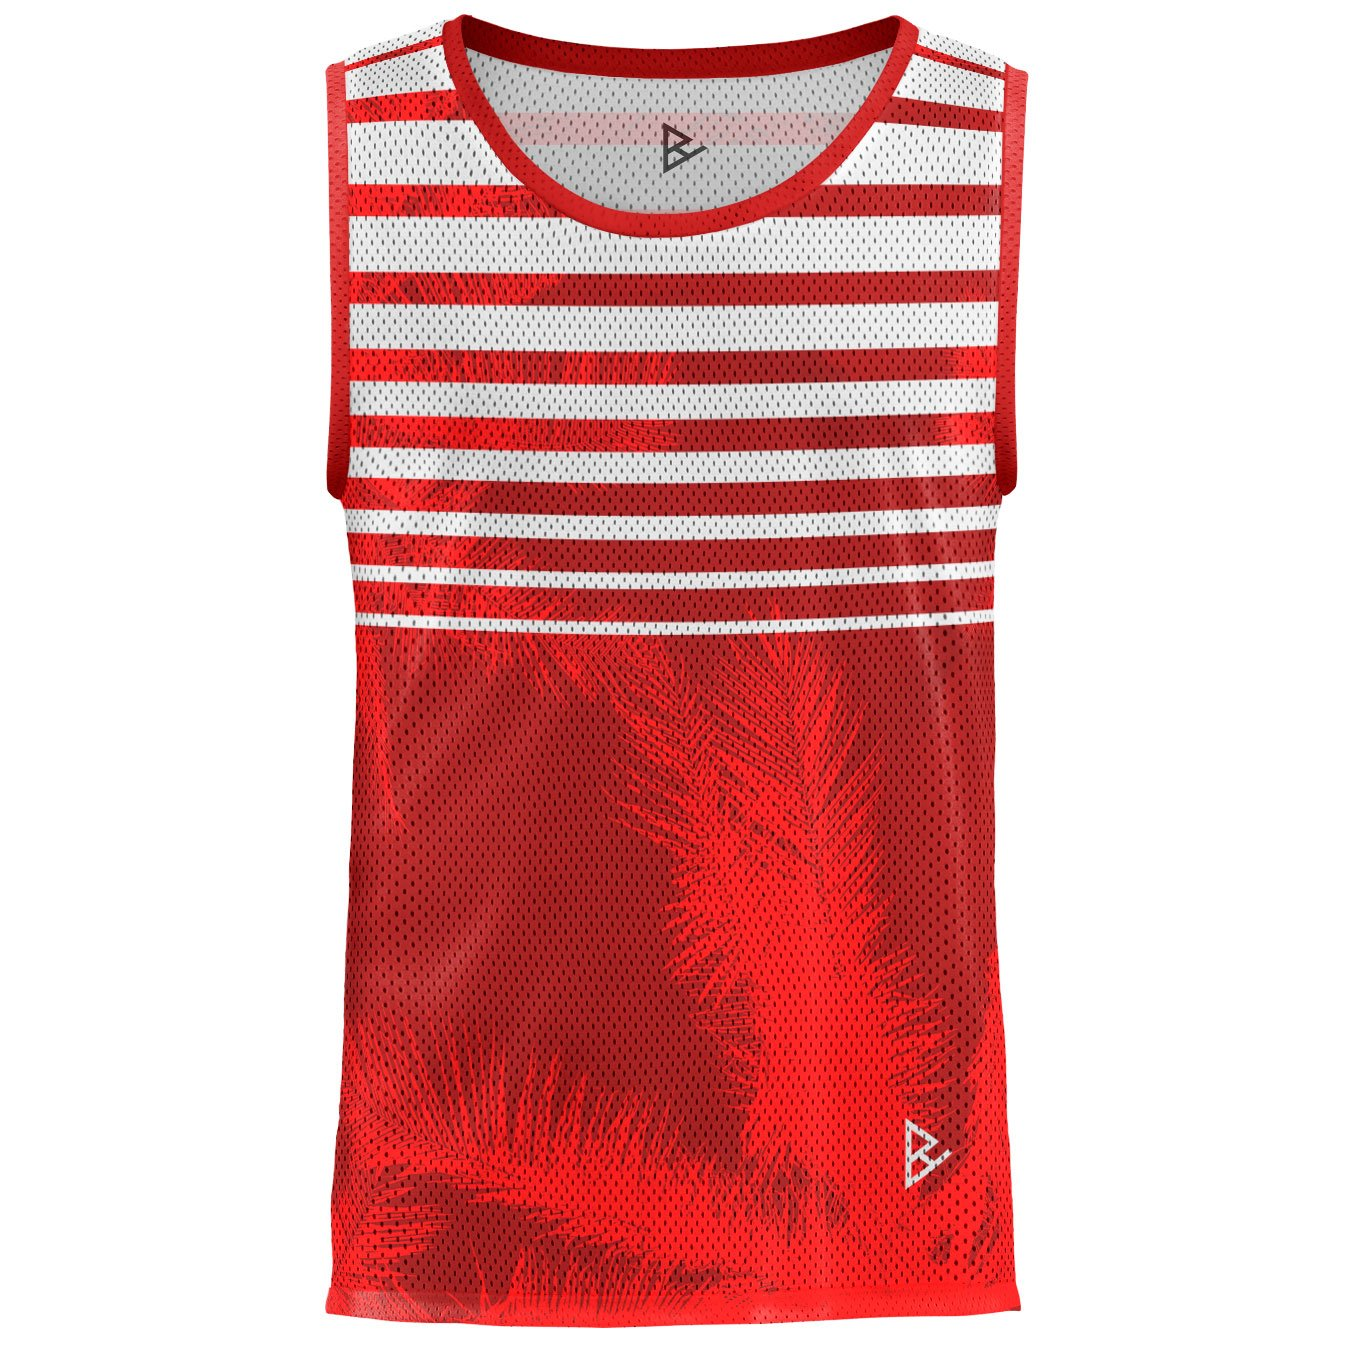 Blowhammer - Men's Tank Top - Red Twilight TNK BHMTNK00100-0413